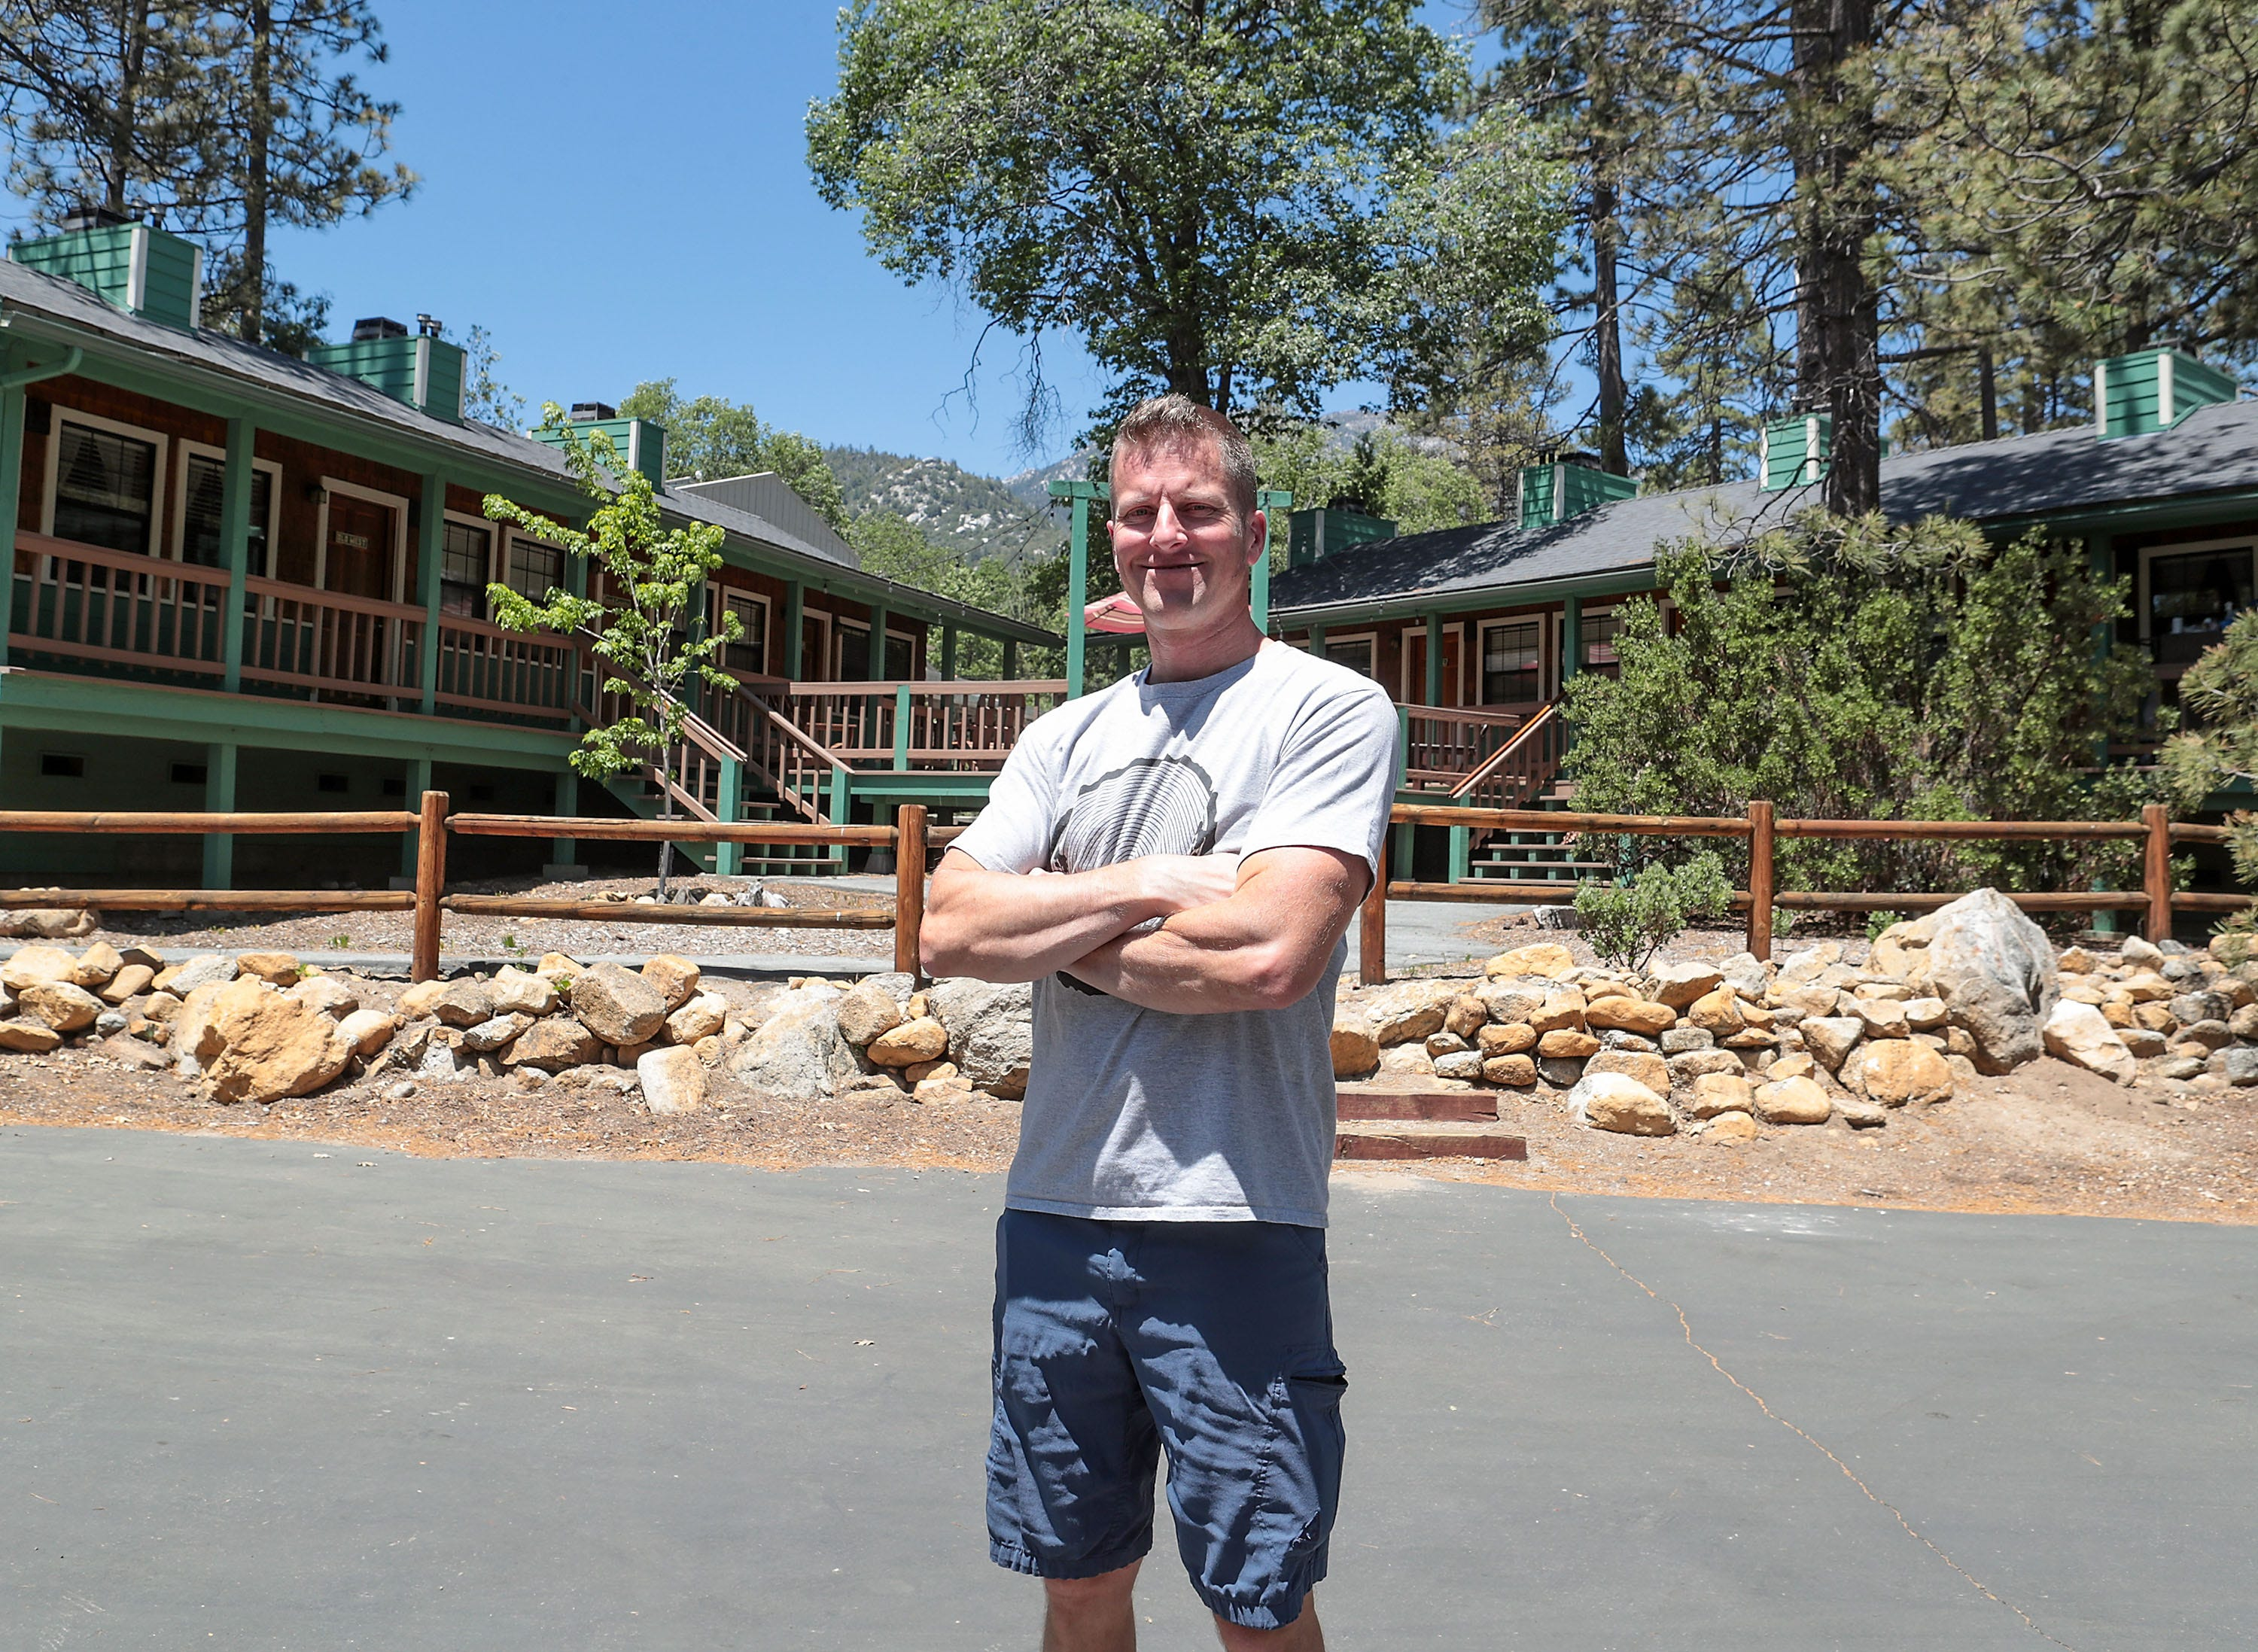 Josh White, owner of the Idyllwild Inn, had to evacuate his guests during the Cranston Fire in 2018 in Idyllwild.